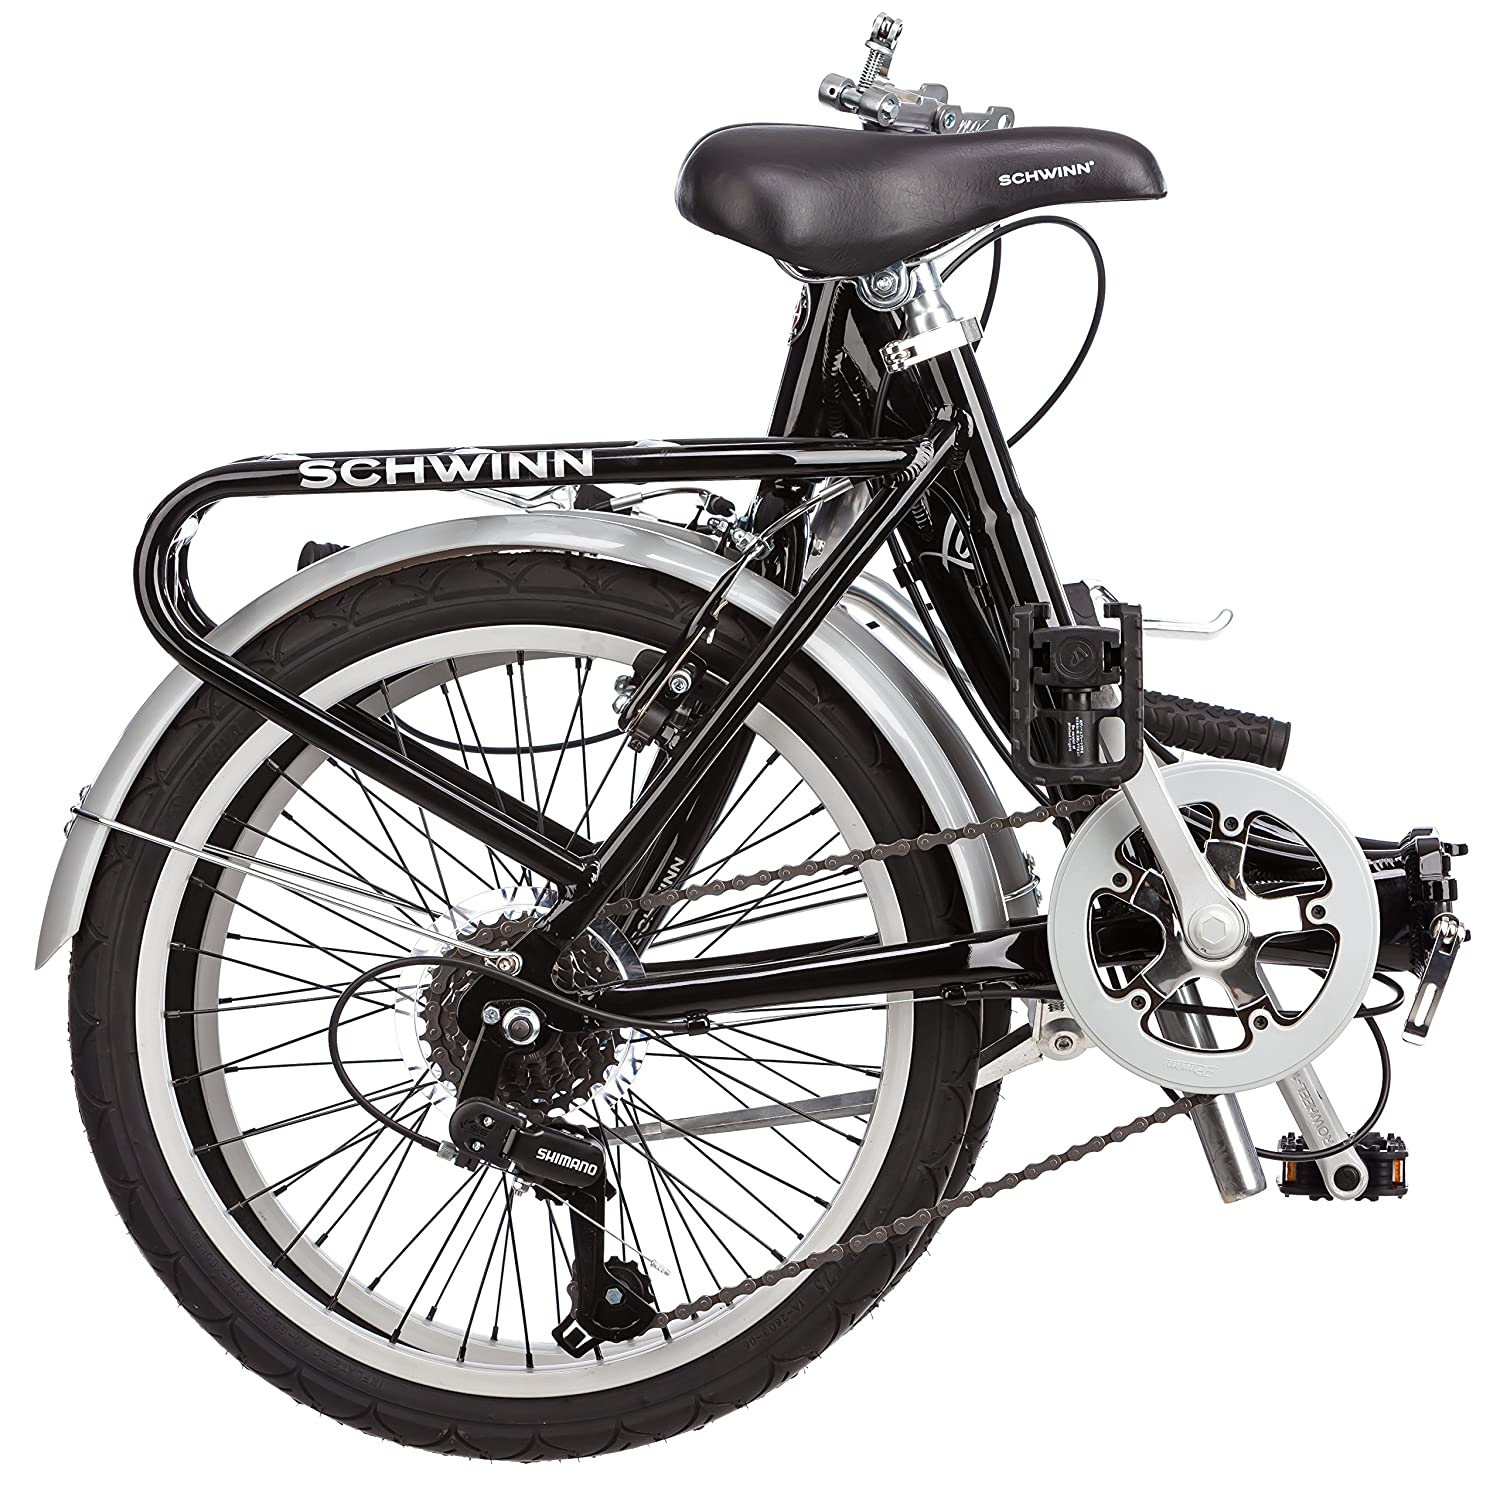 696873d4c86 Amazon.com : Schwinn Loop Folding Bicycle, Featuring Front and Rear  Fenders, Rear Carry Rack, and Kickstand with 7-Speed Drivetrain, Includes  Nylon Carrying ...